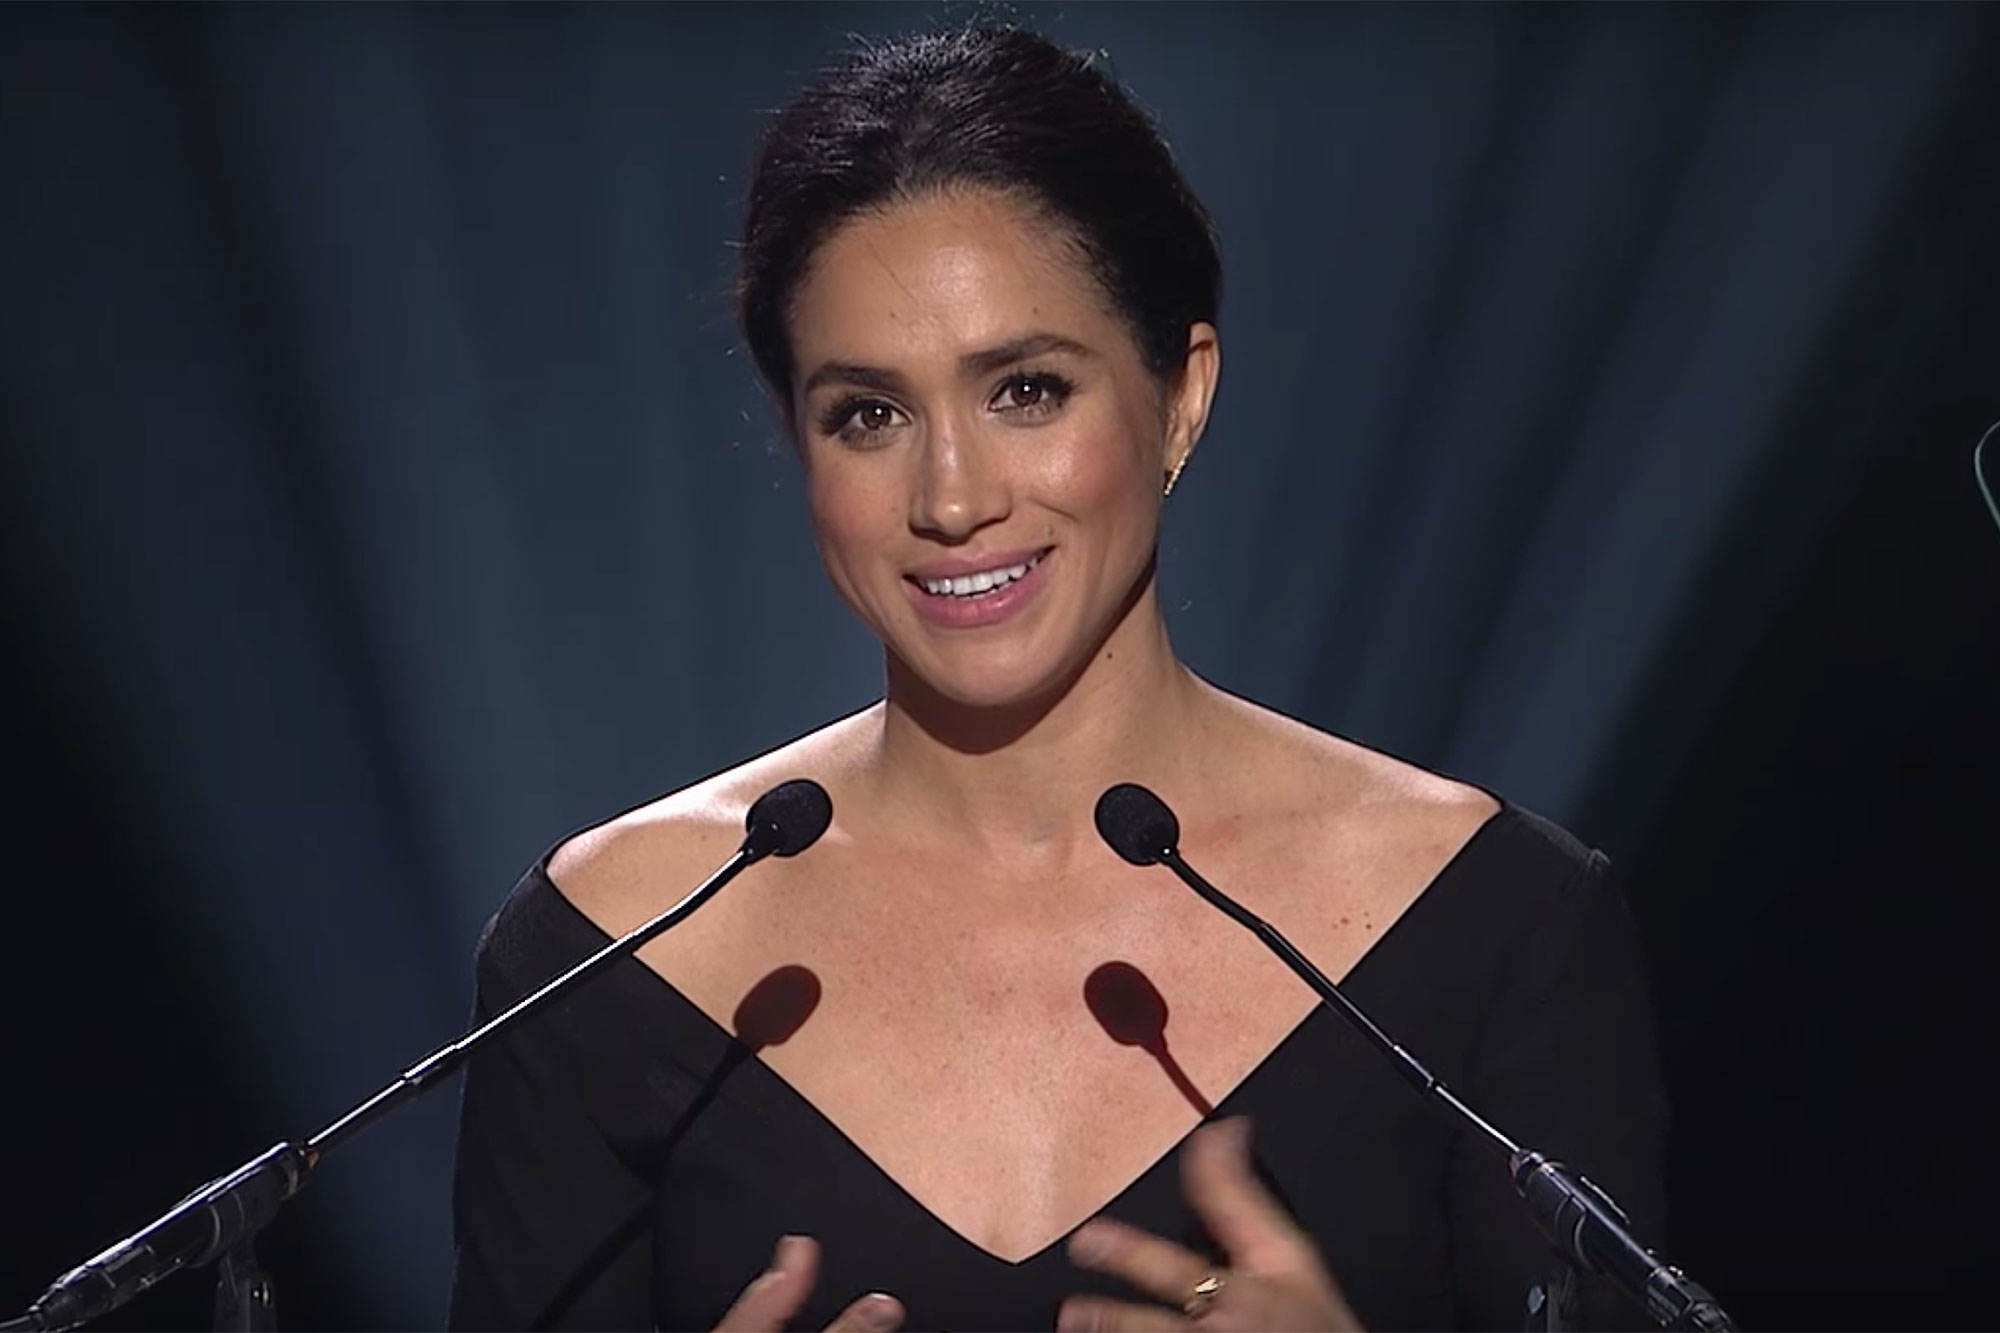 Meghan Markle UNhttps://www.youtube.com/watch?v=Zkb-zg4JCLk